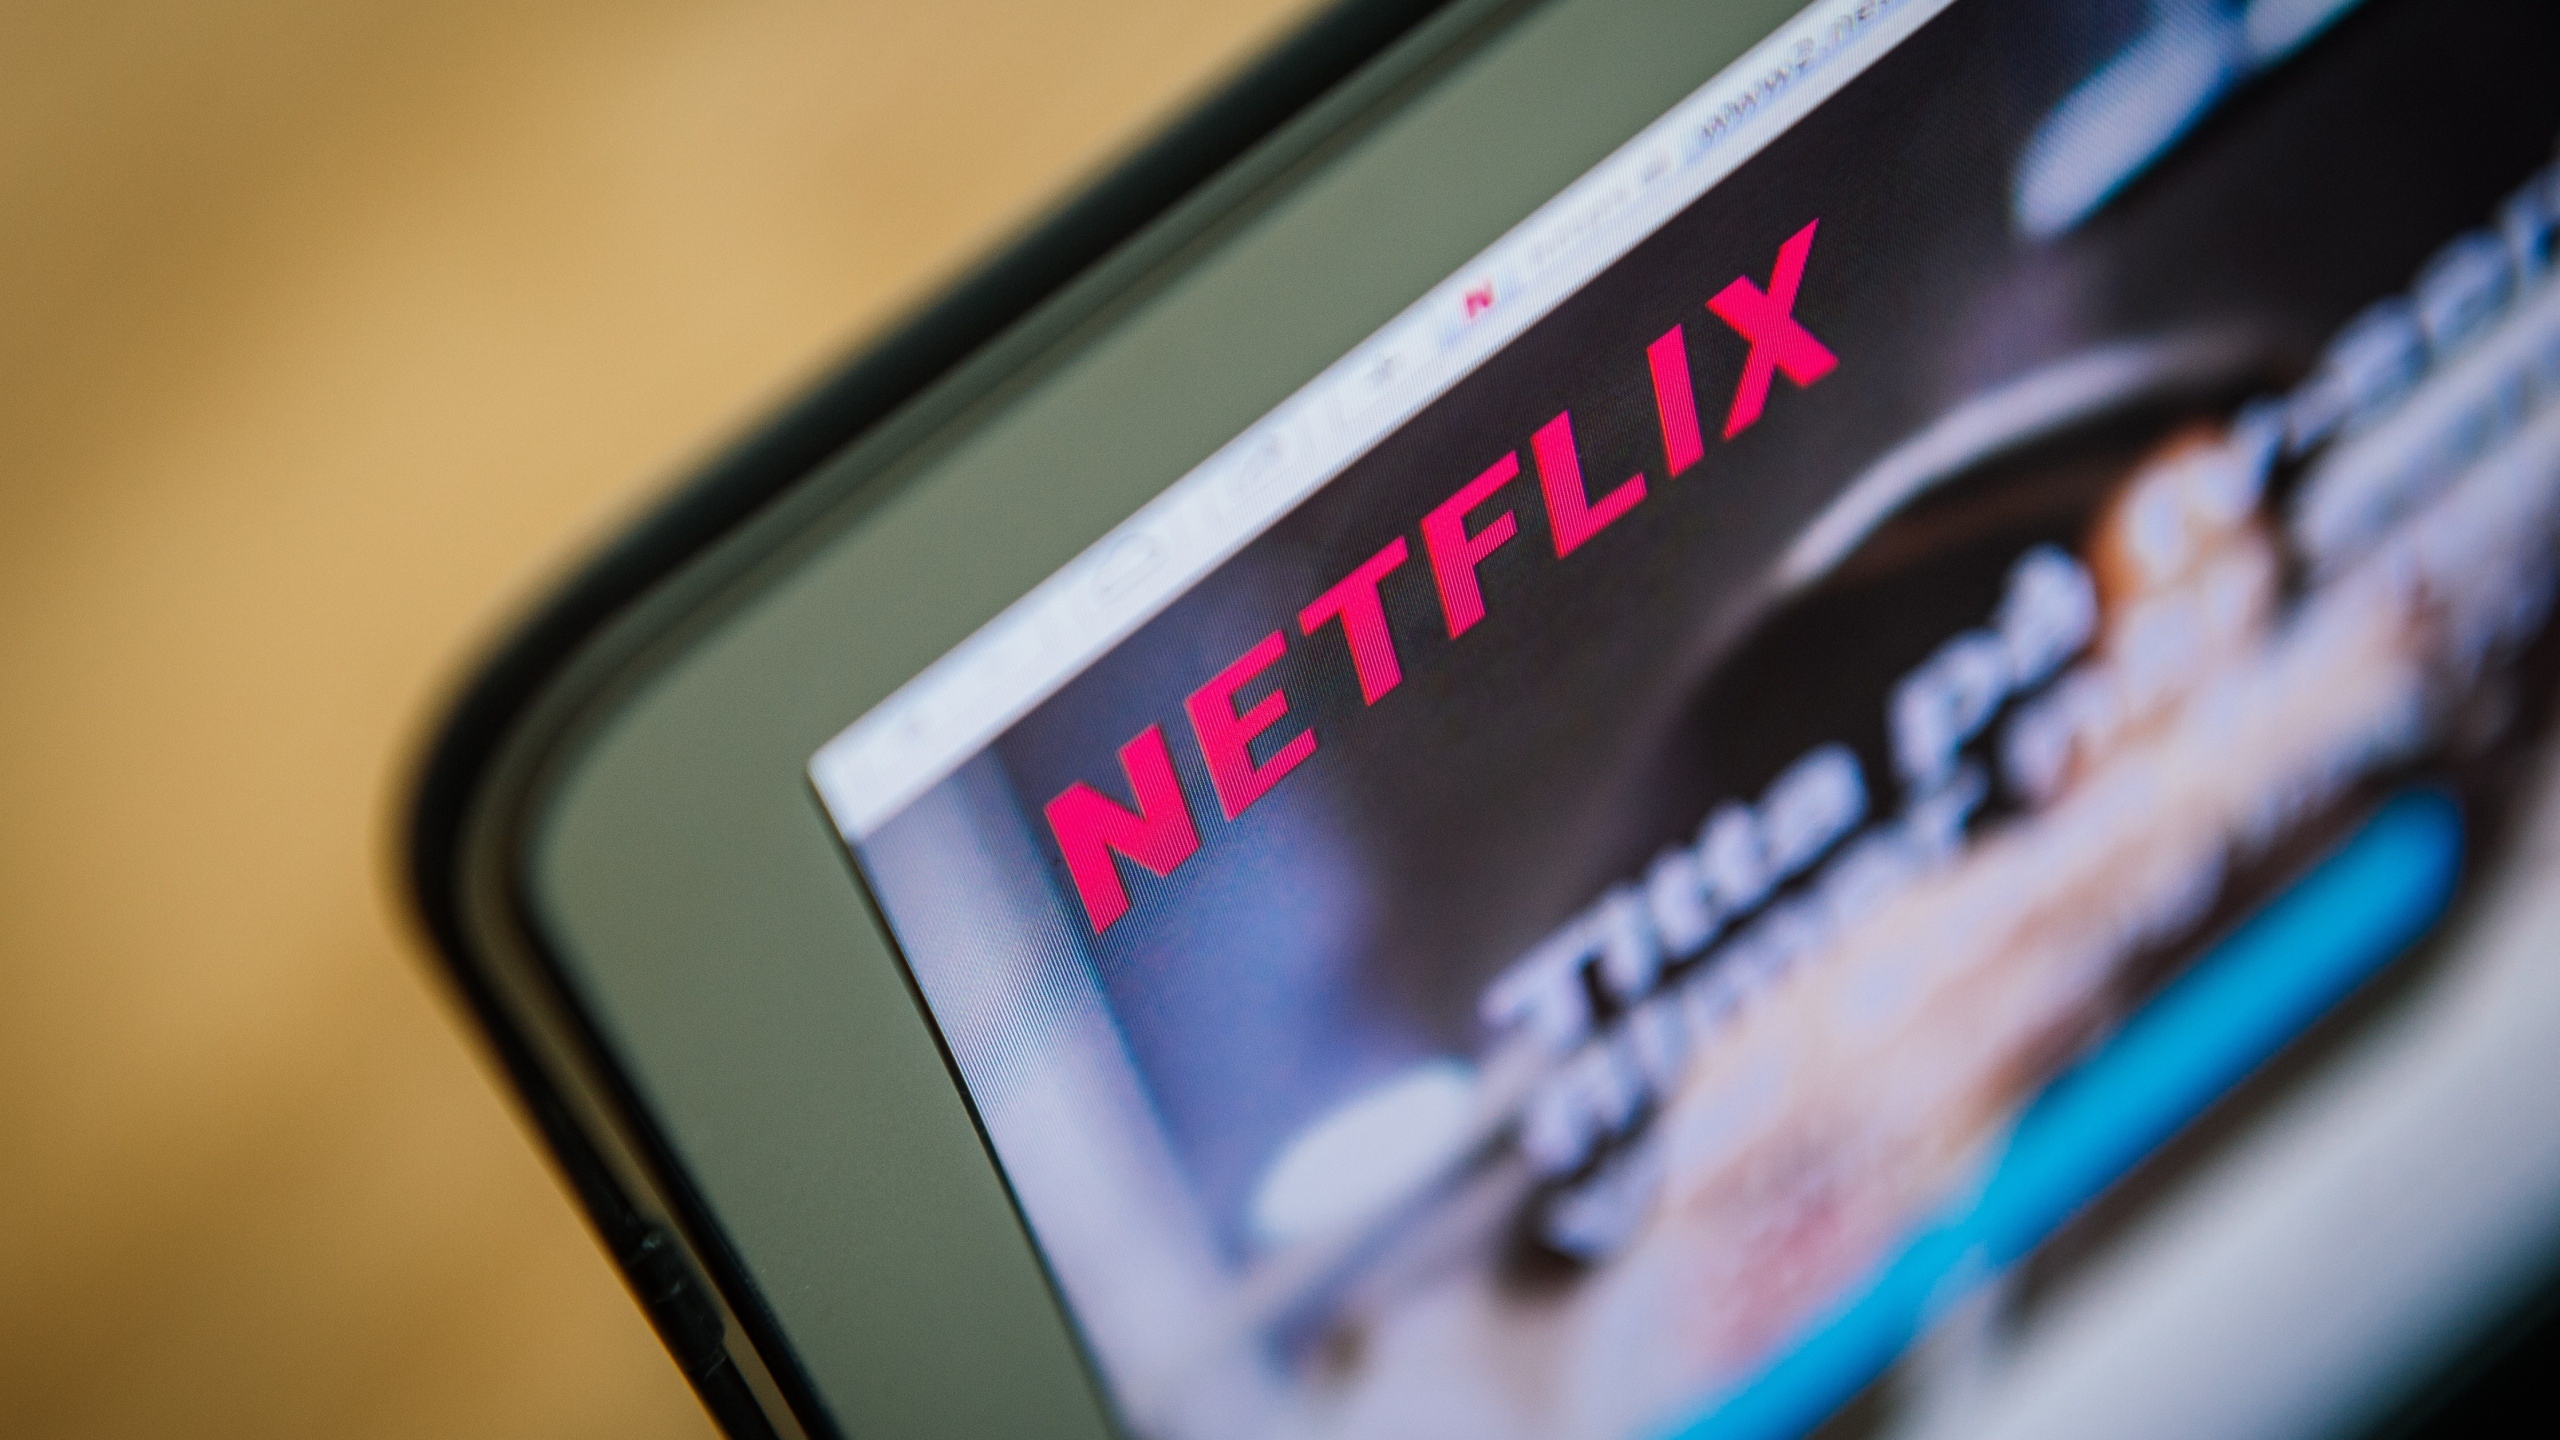 This picture. taken on Sept. 11, 2014, shows the on-demand internet streaming media provider, Netflix, on a laptop screen in Stockholm. (JONATHAN NACKSTRAND/AFP/Getty Images)